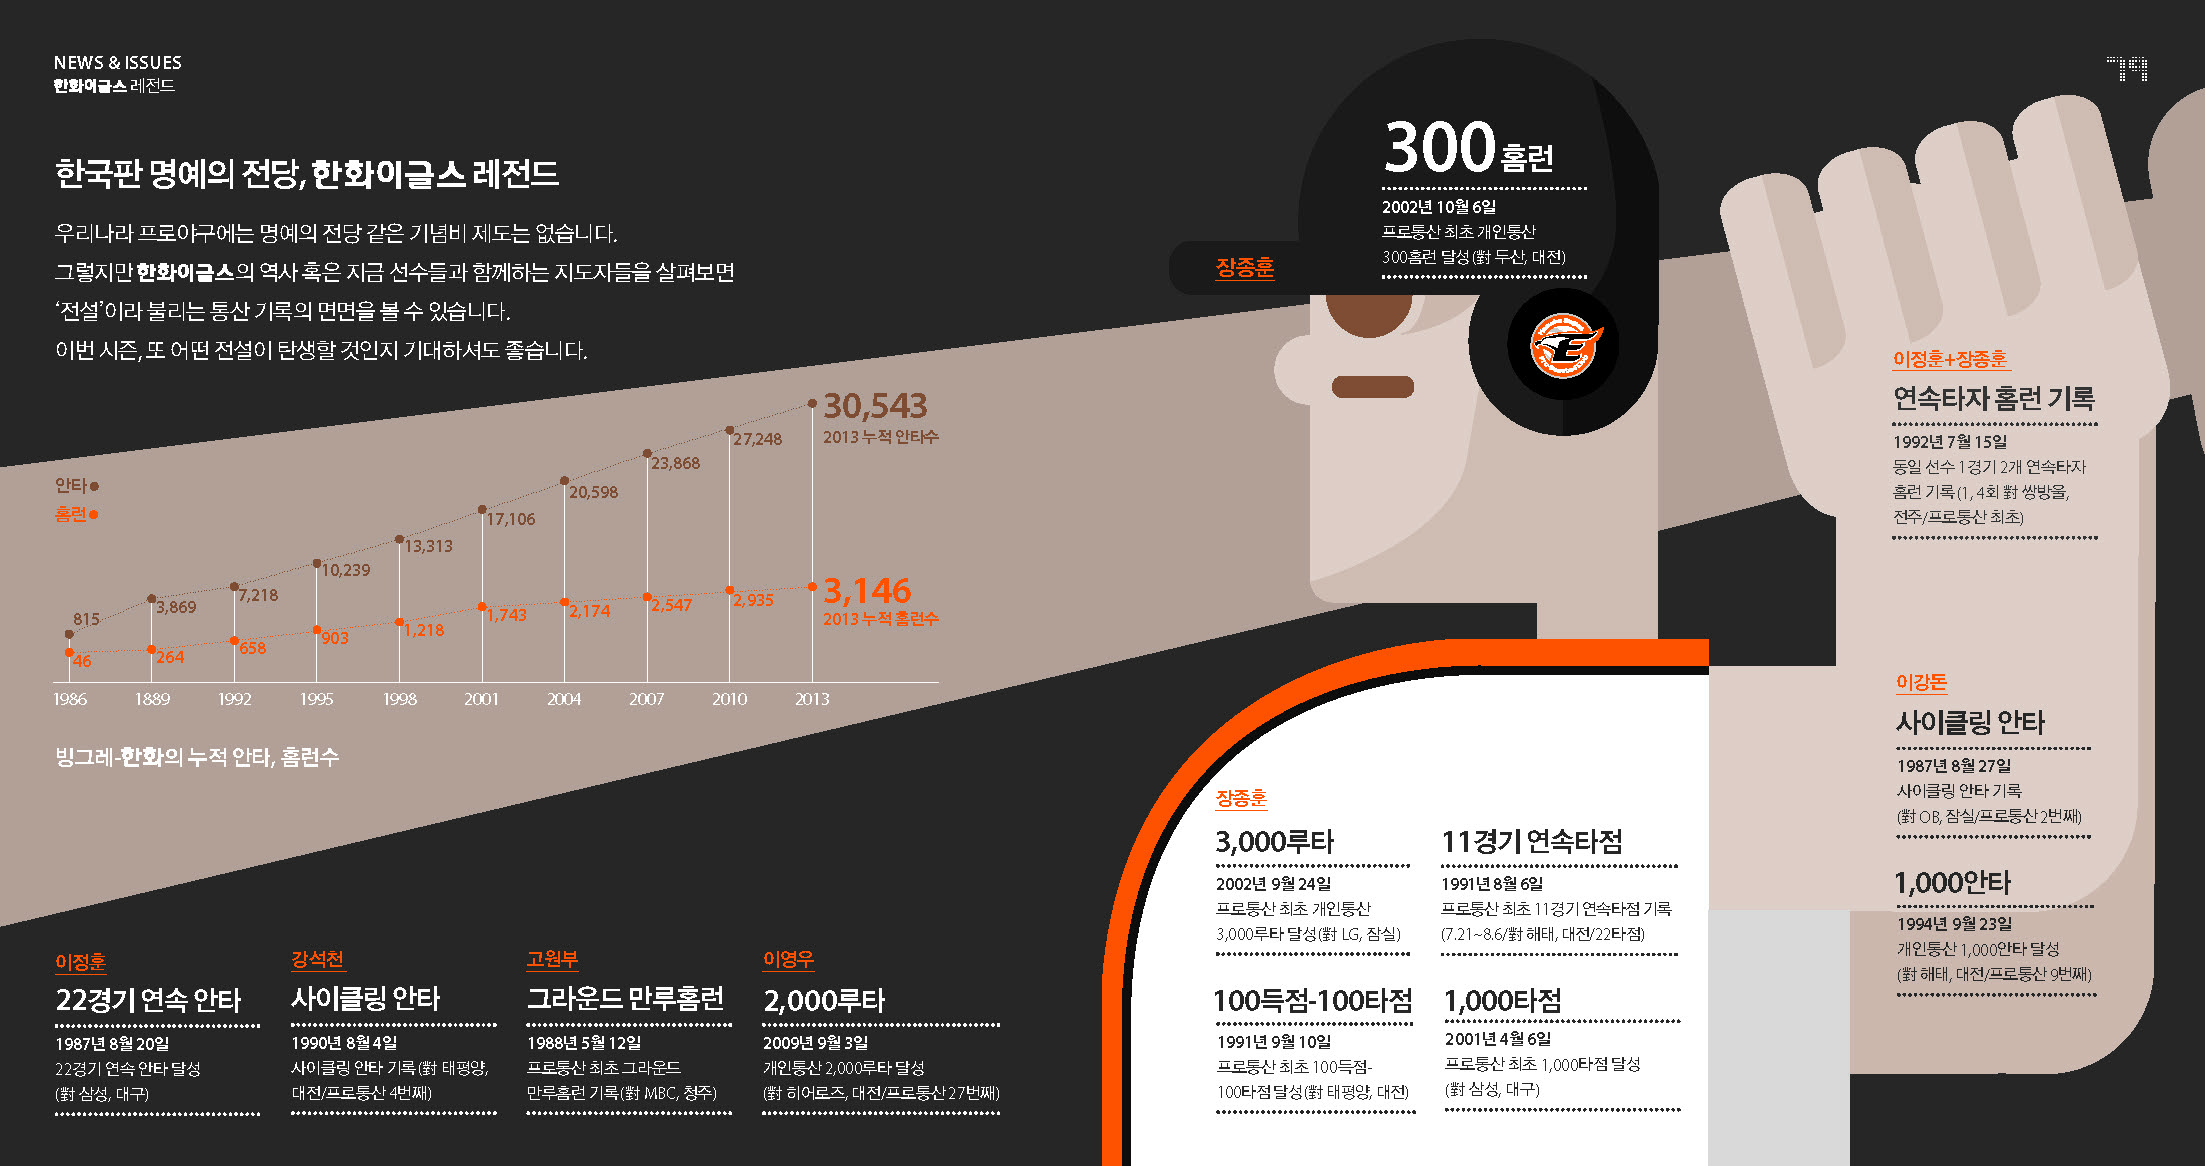 hanwha eagles_2014 fan book_B_39.jpg